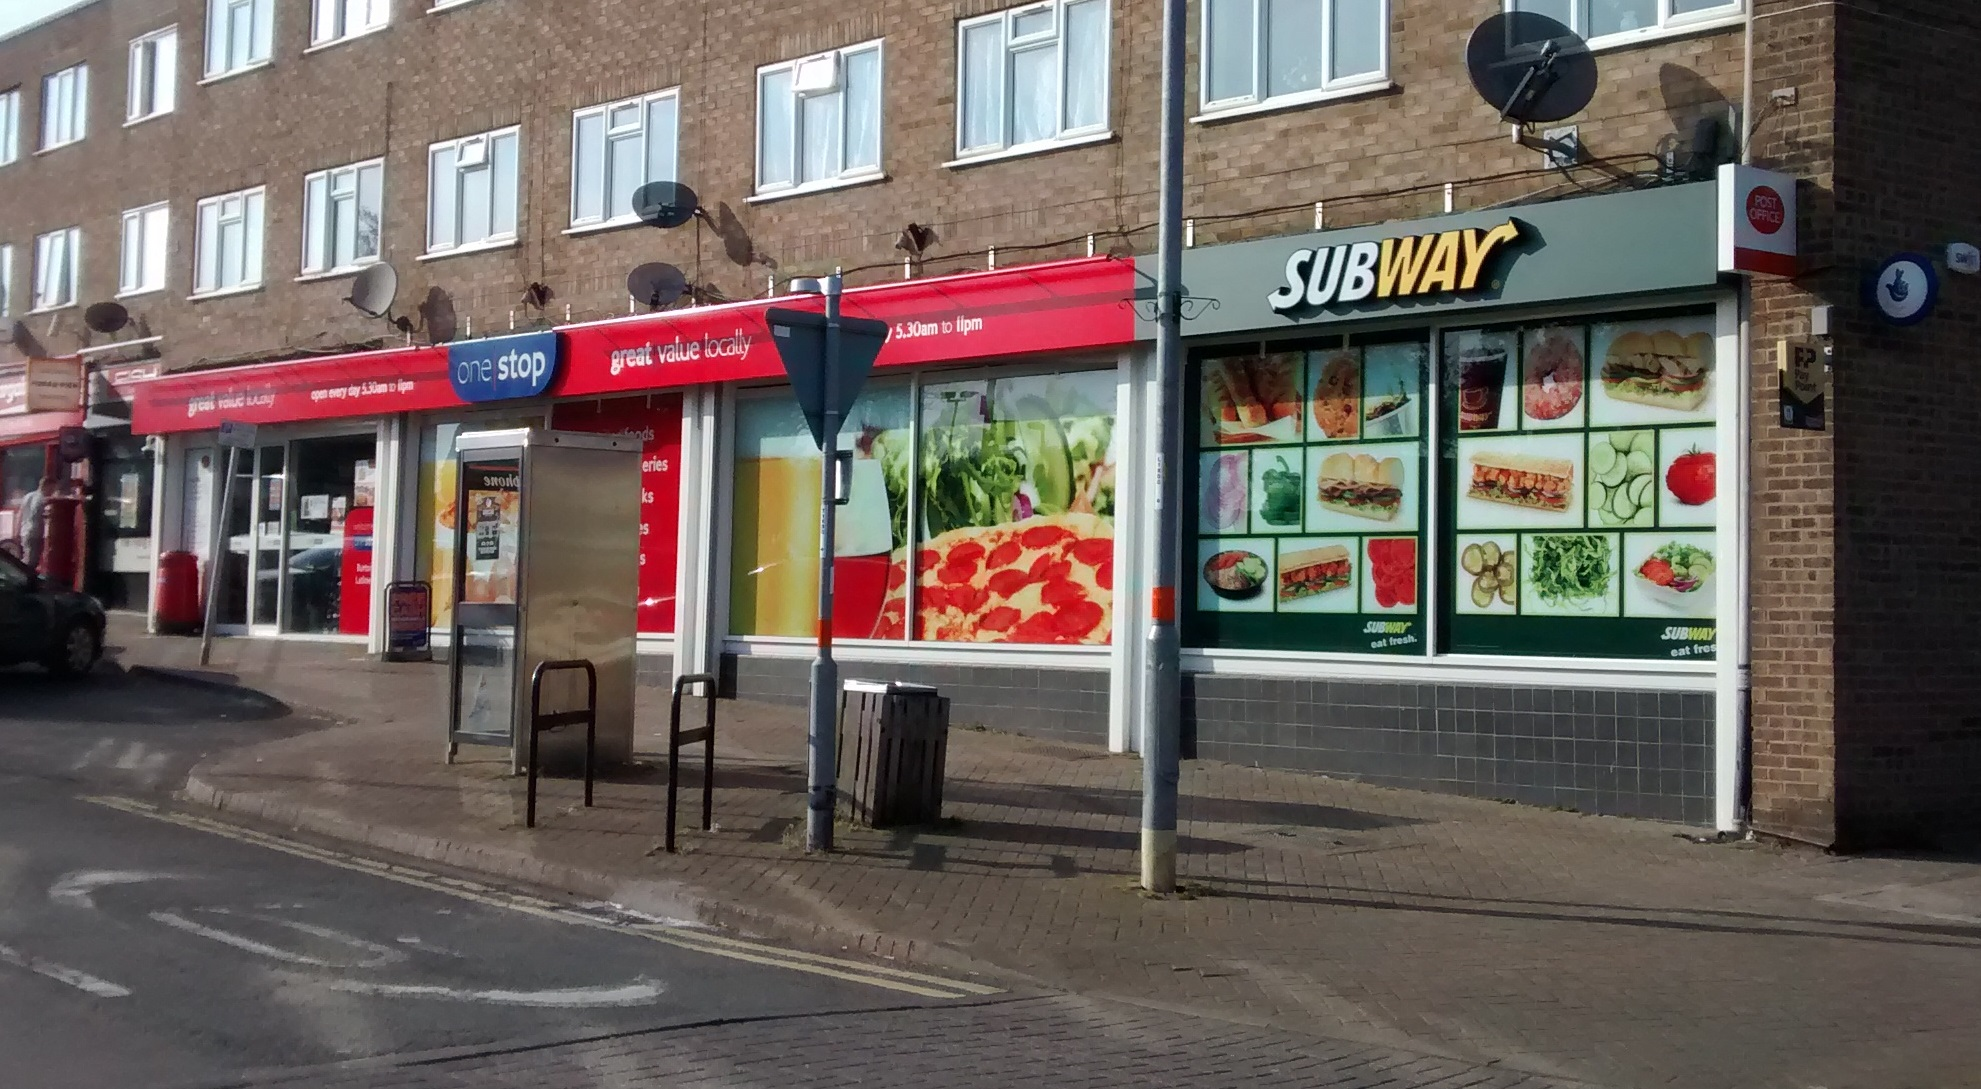 Subway - Burton Latimer external